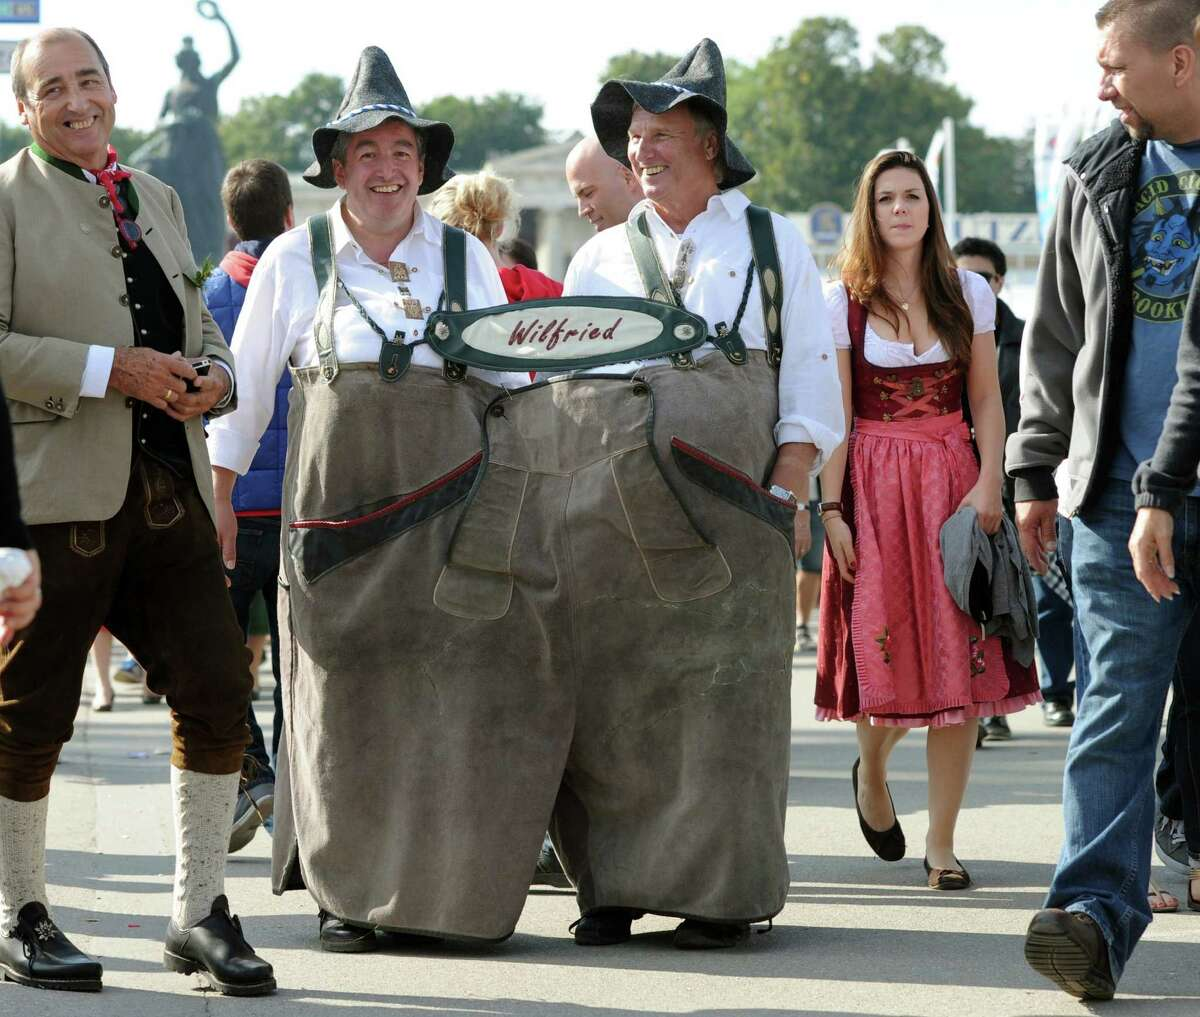 Wilfried and Wilfried, two men from Darmstadt, western Germany, wear together a giant Lederhose (leather trousers) during the Oktoberfest beer festival on the Theresienwiese fair grounds in Munich, southern Germany, on September 21, 2013.